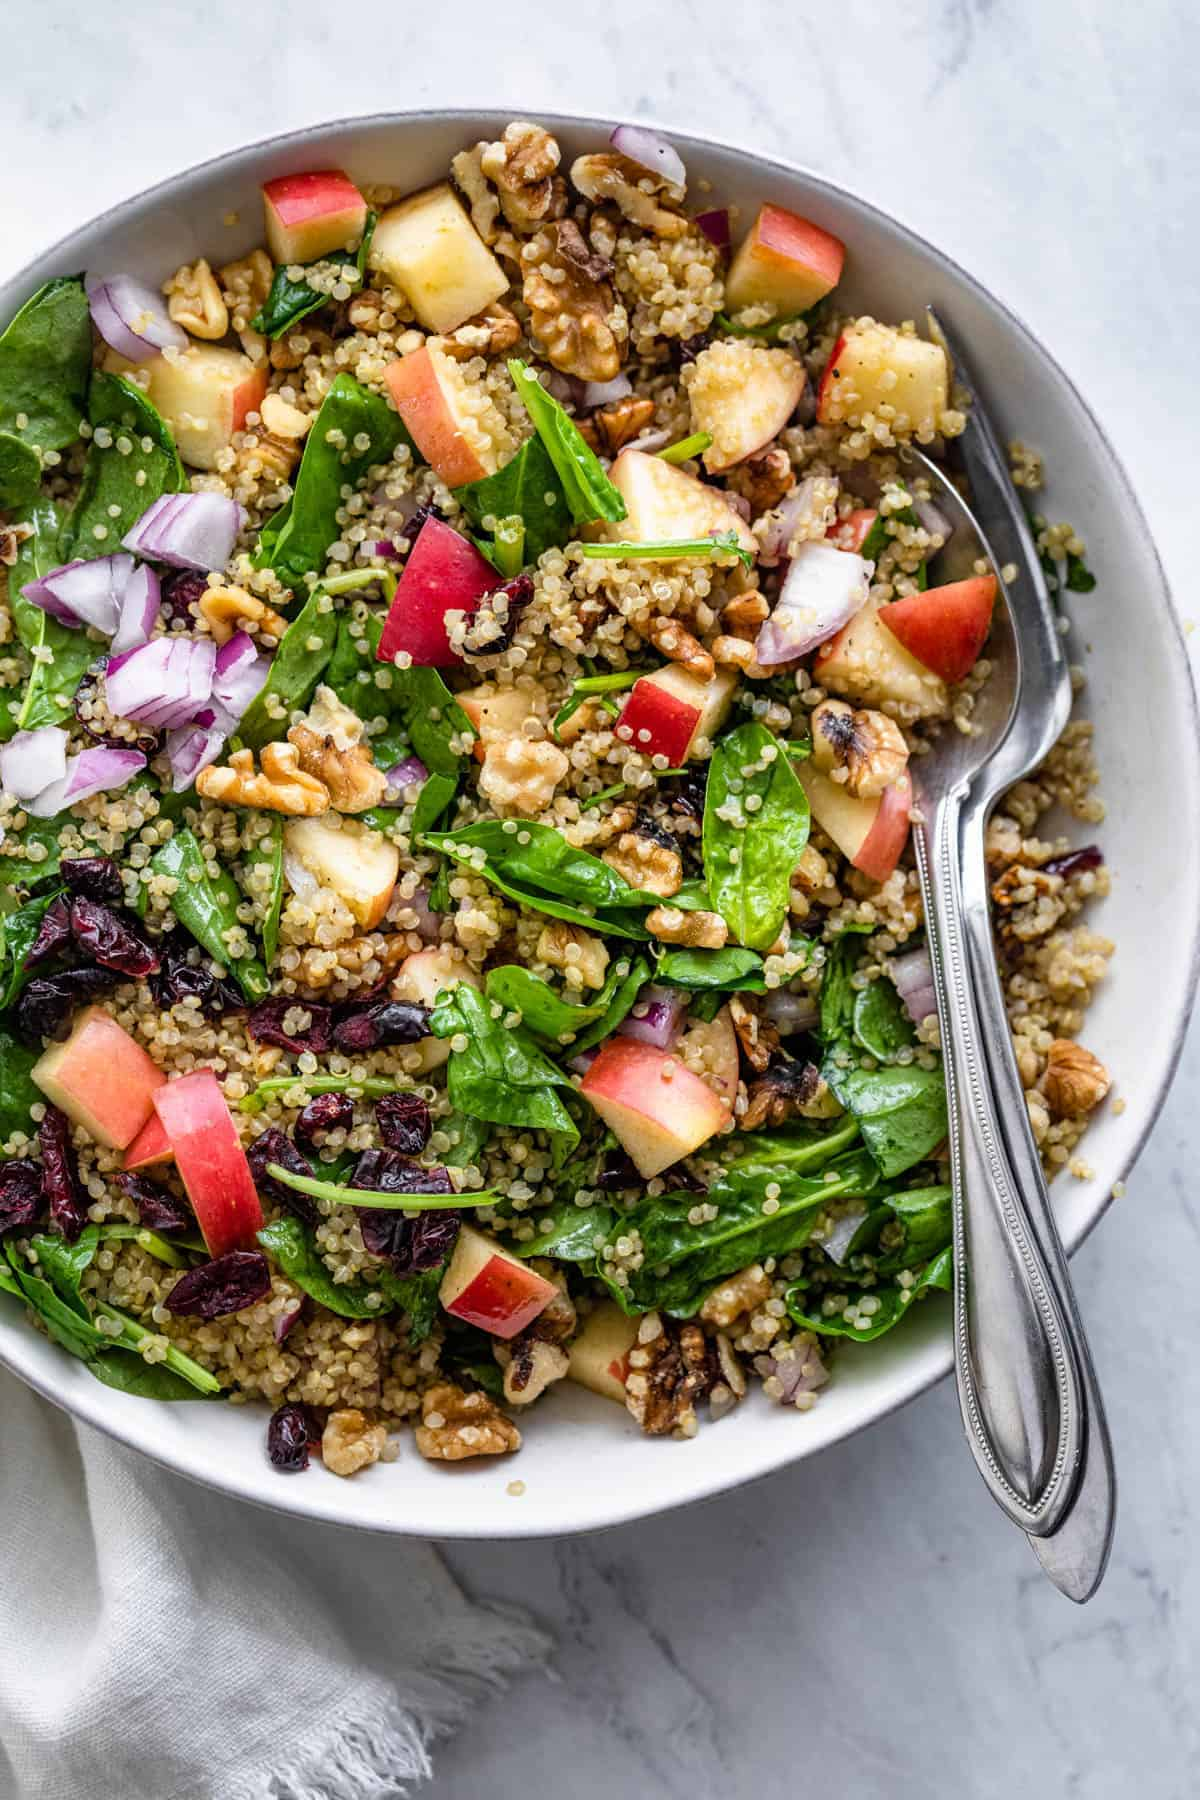 Walnut apple quinoa salad serve in a large bowl with utensils